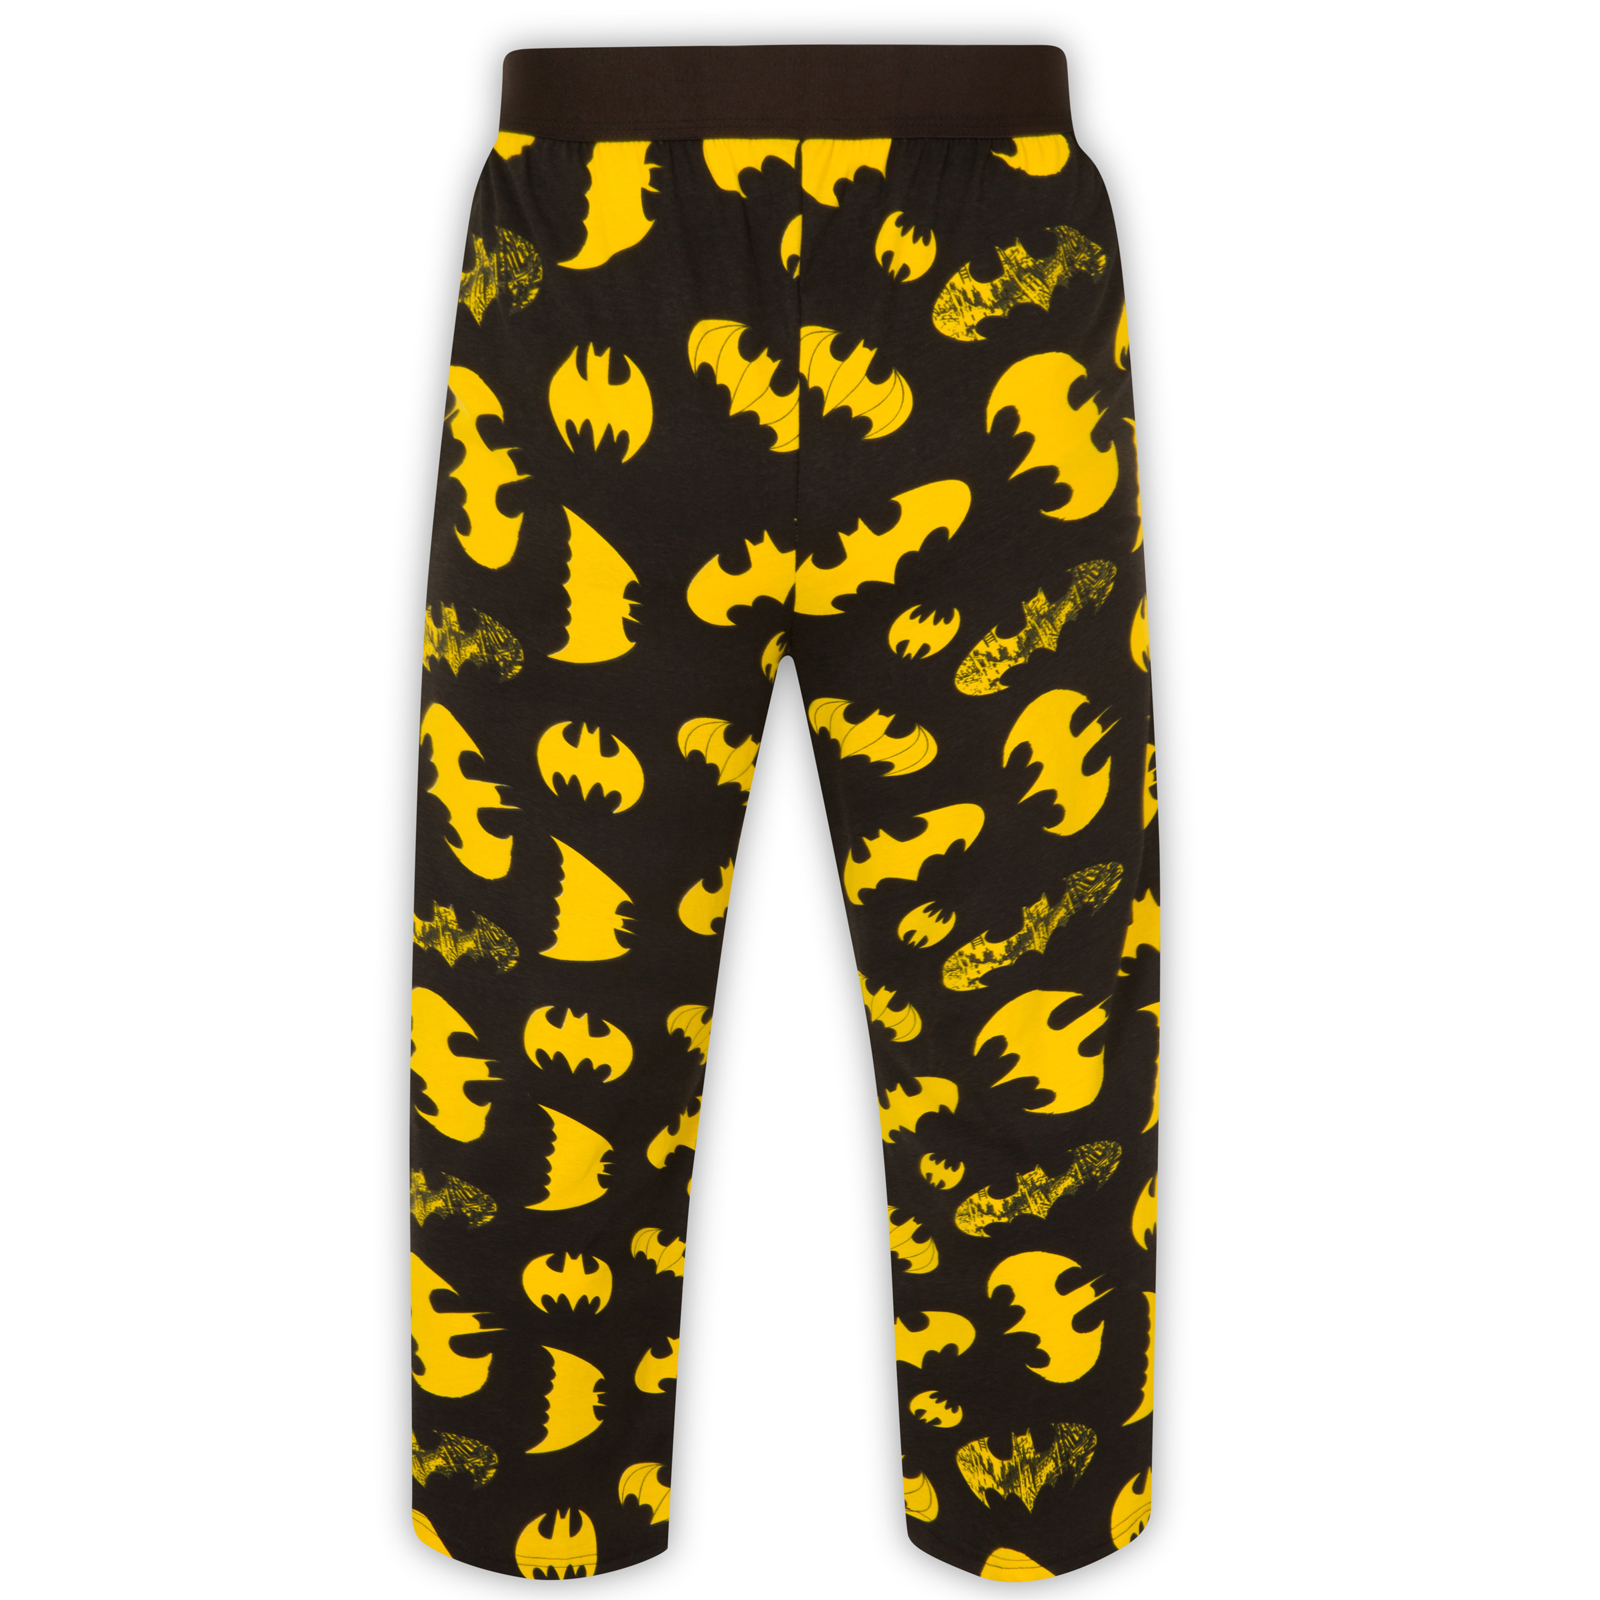 "The % cotton pajama set has pants that are light in color but covered in the bat symbol giving it a nice contrast and then there is the t-shirt top that is light gray in color and show the Batman logo but over it, you find the text ""Up All Night""."